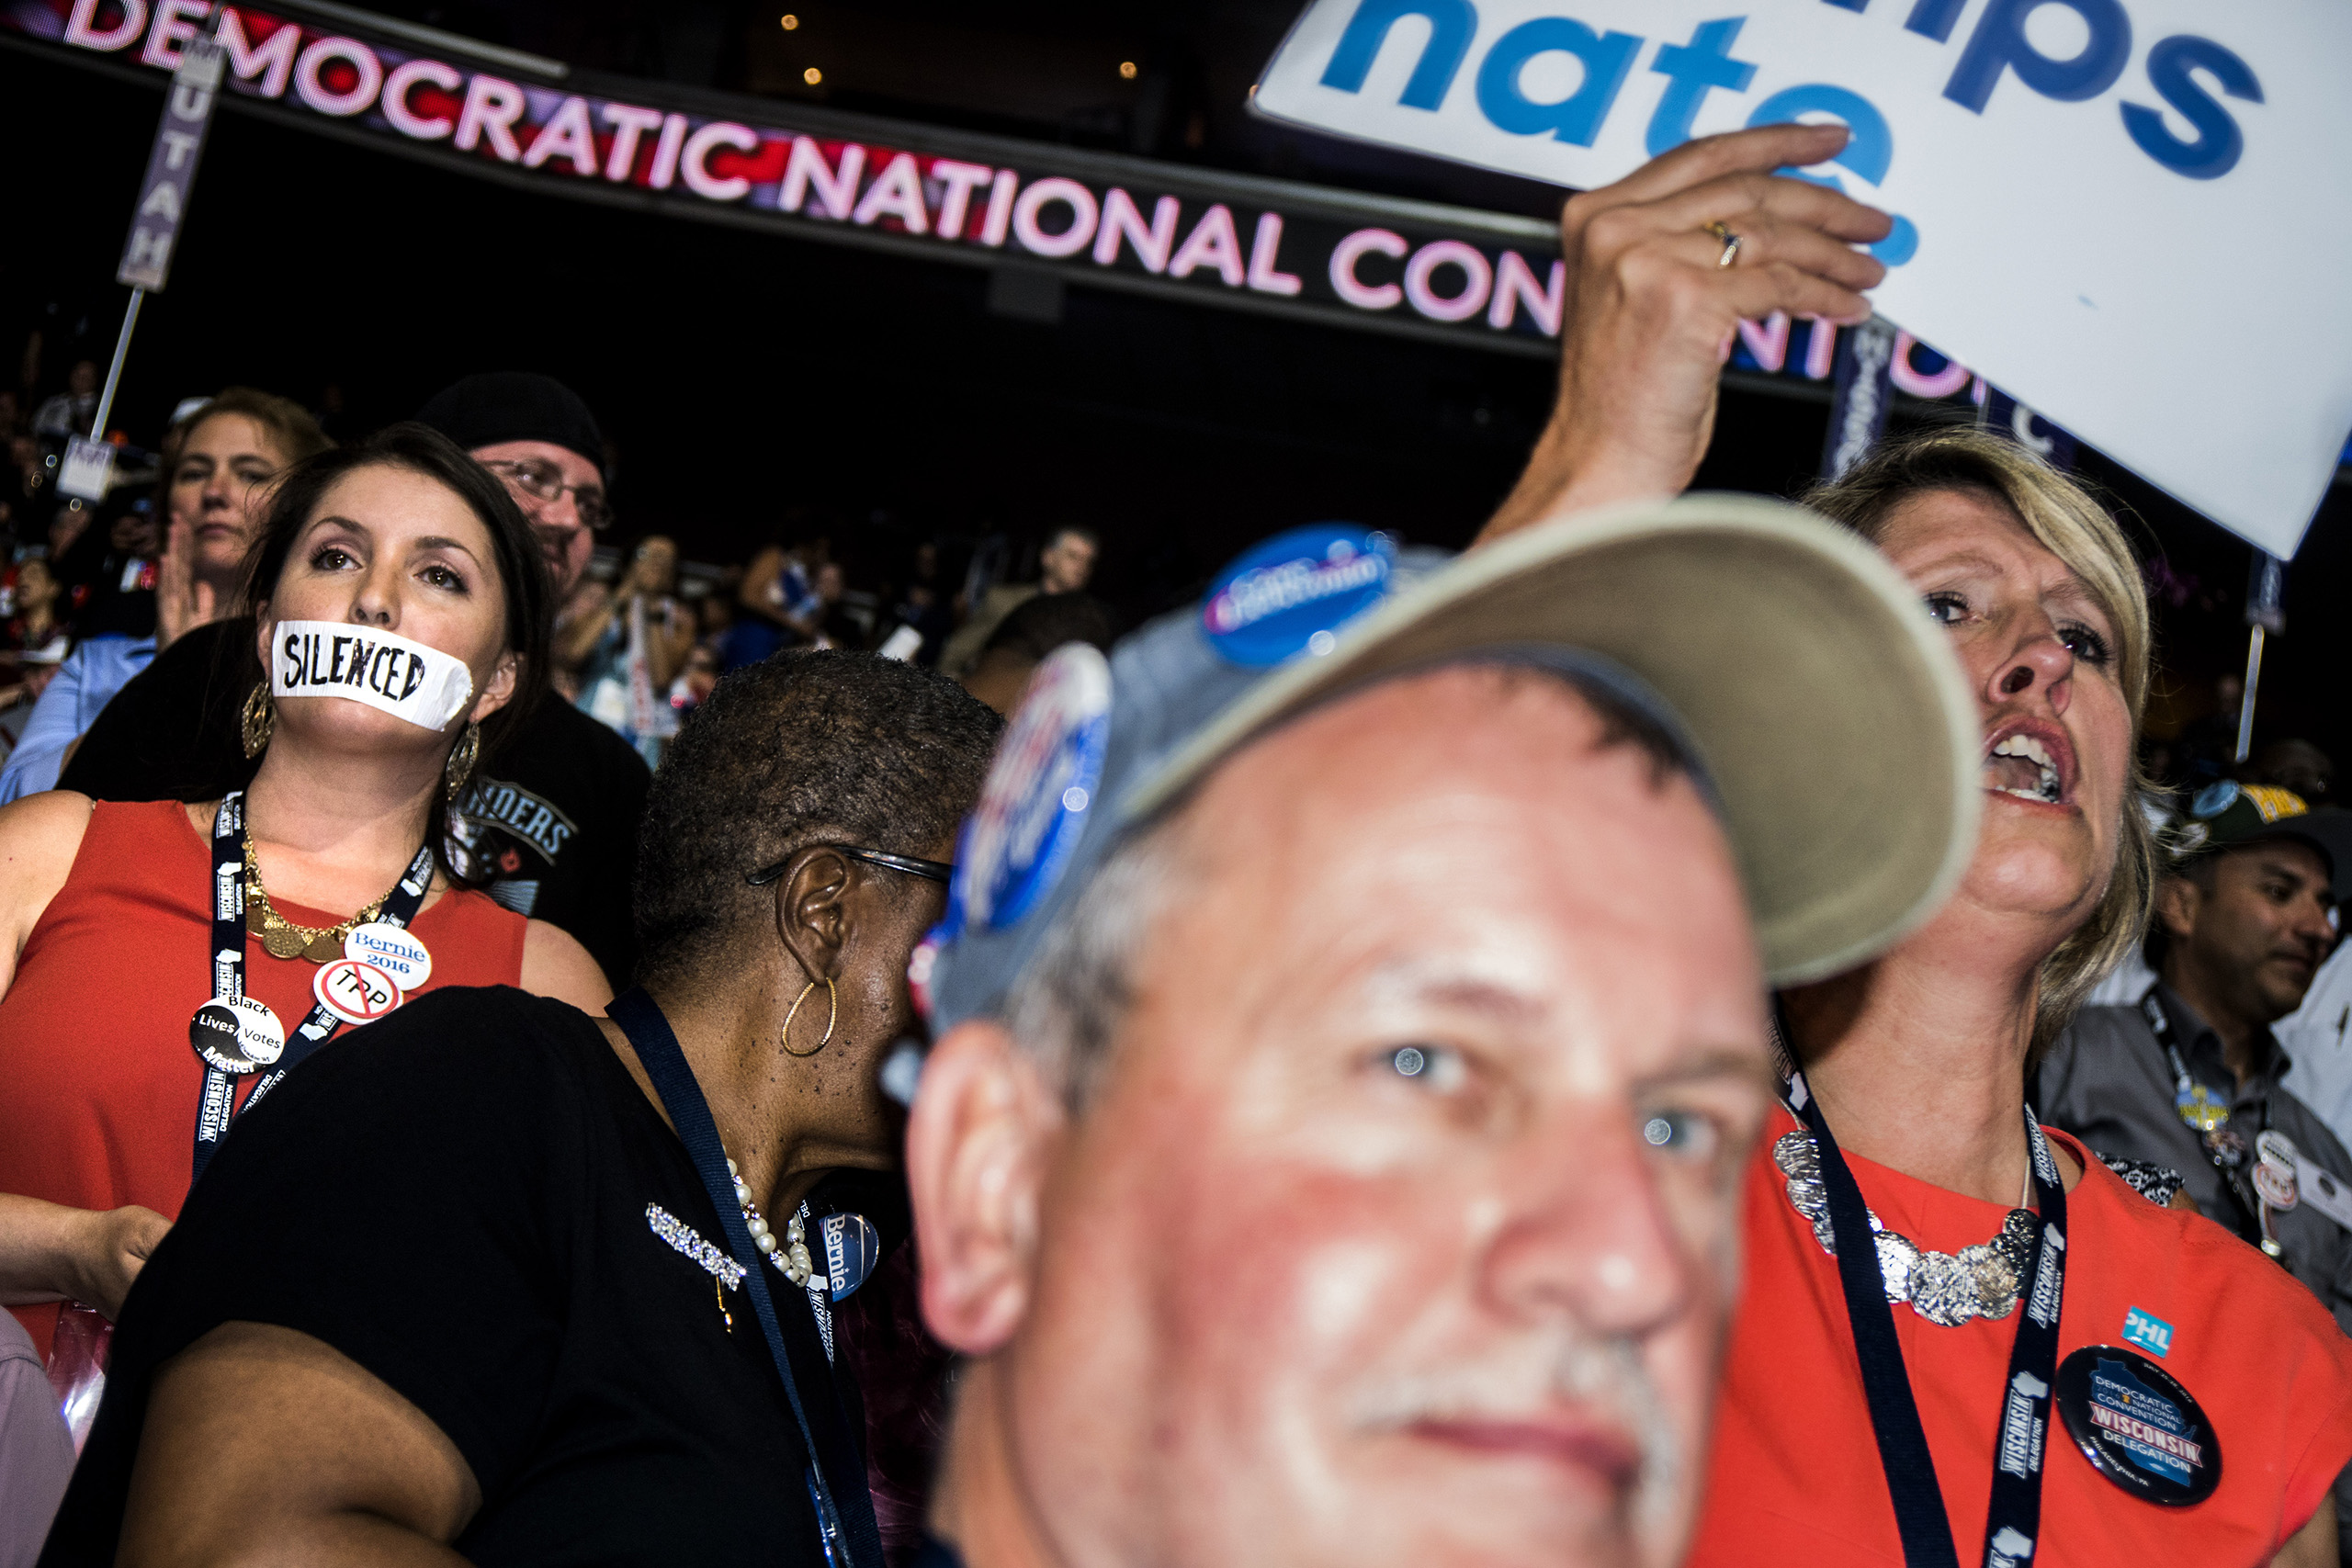 A supporter of former Democratic presidential candidate Bernie Sanders stands in silent protest during Day 1 of the Democratic National Convention at the Wells Fargo Center in Philadelphia, Pennsylvania, July 25, 2016.